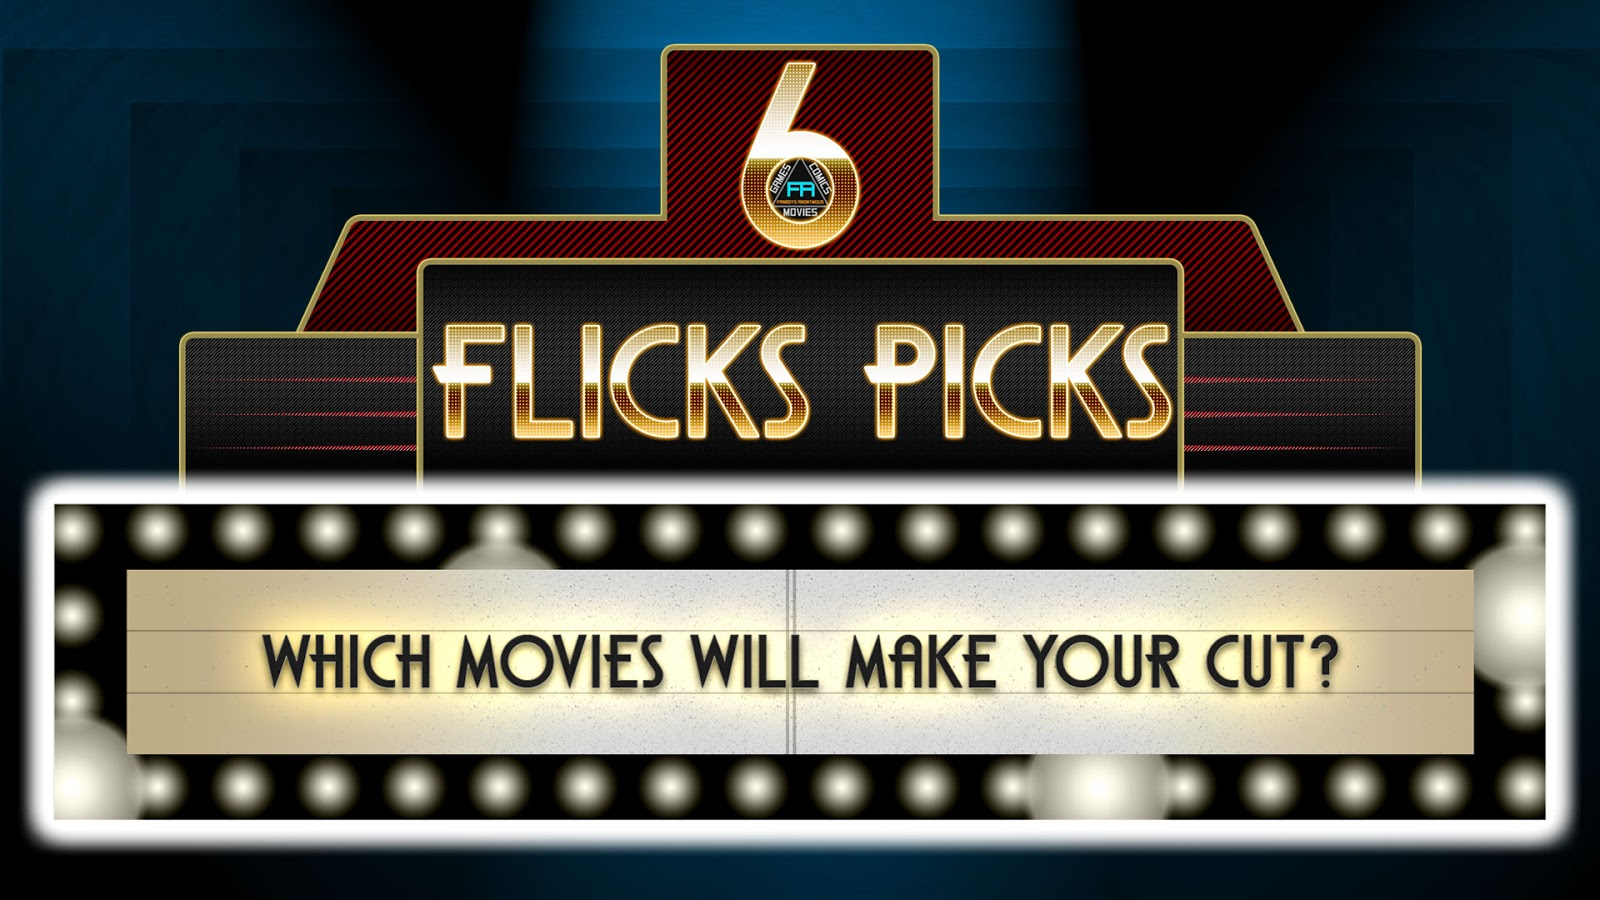 What movies are coming out November 2016 6 Flicks Picks